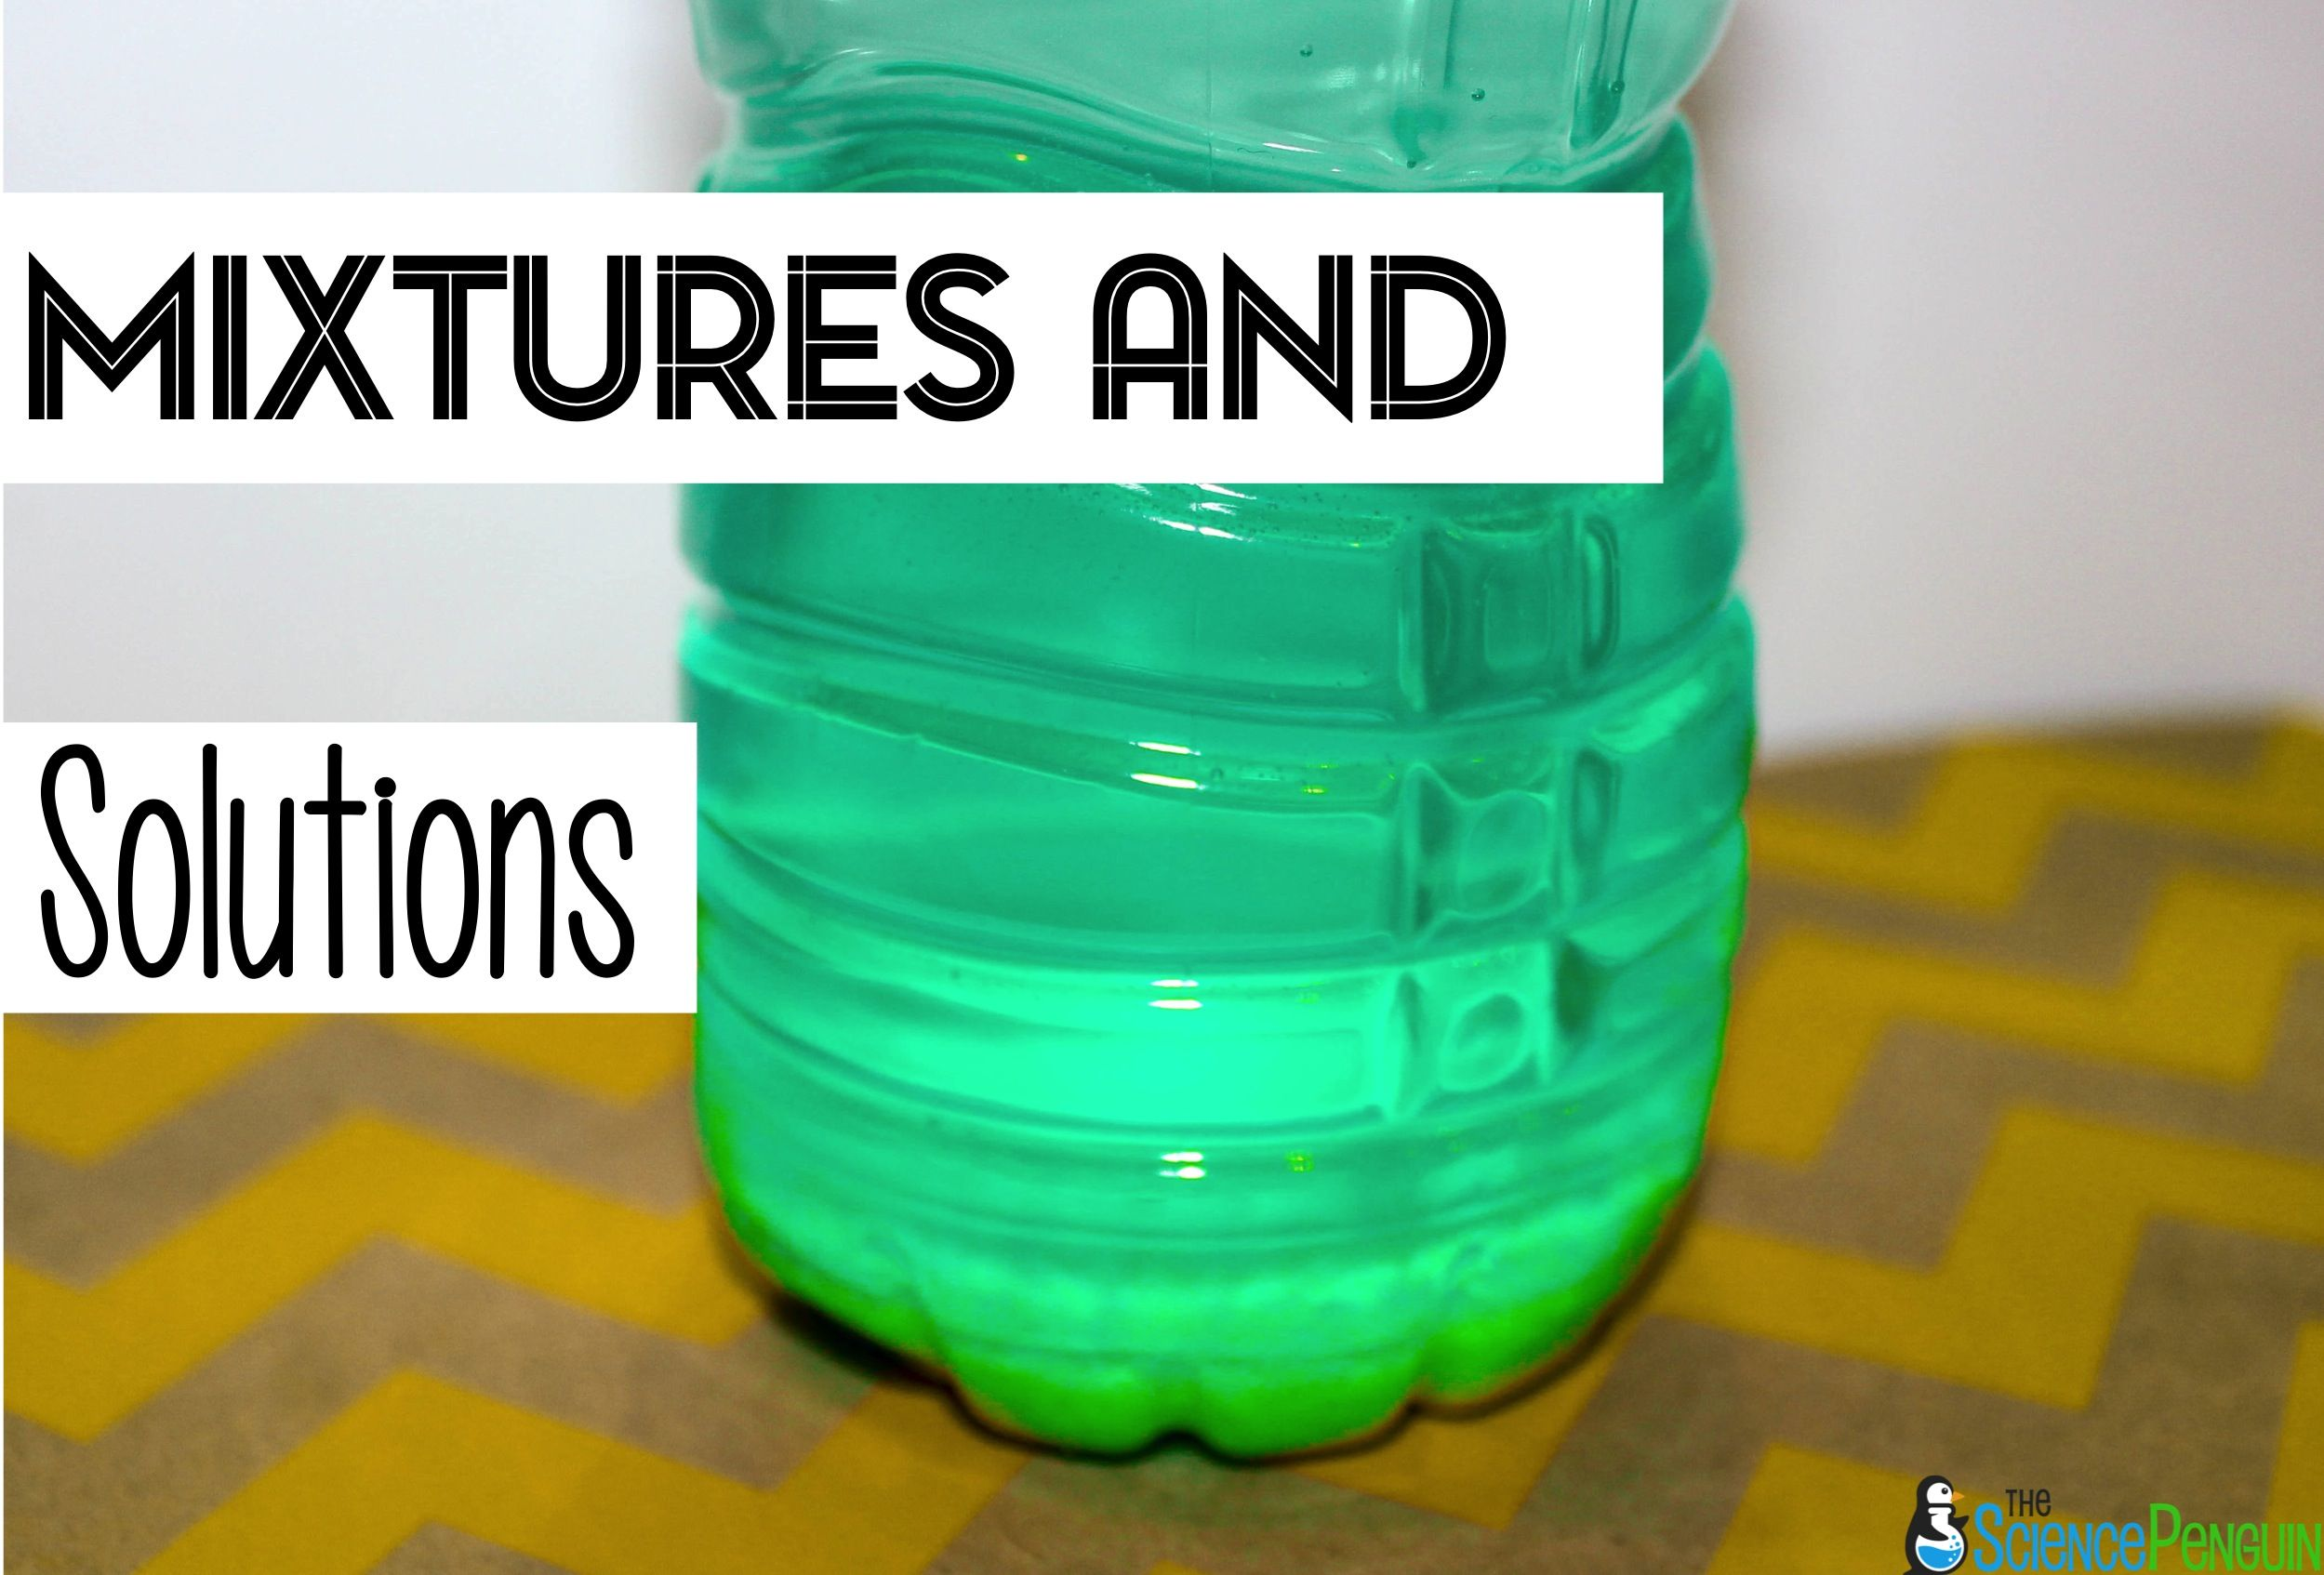 Mixtures and Solutions Pinterest Board | Mixtures and ...